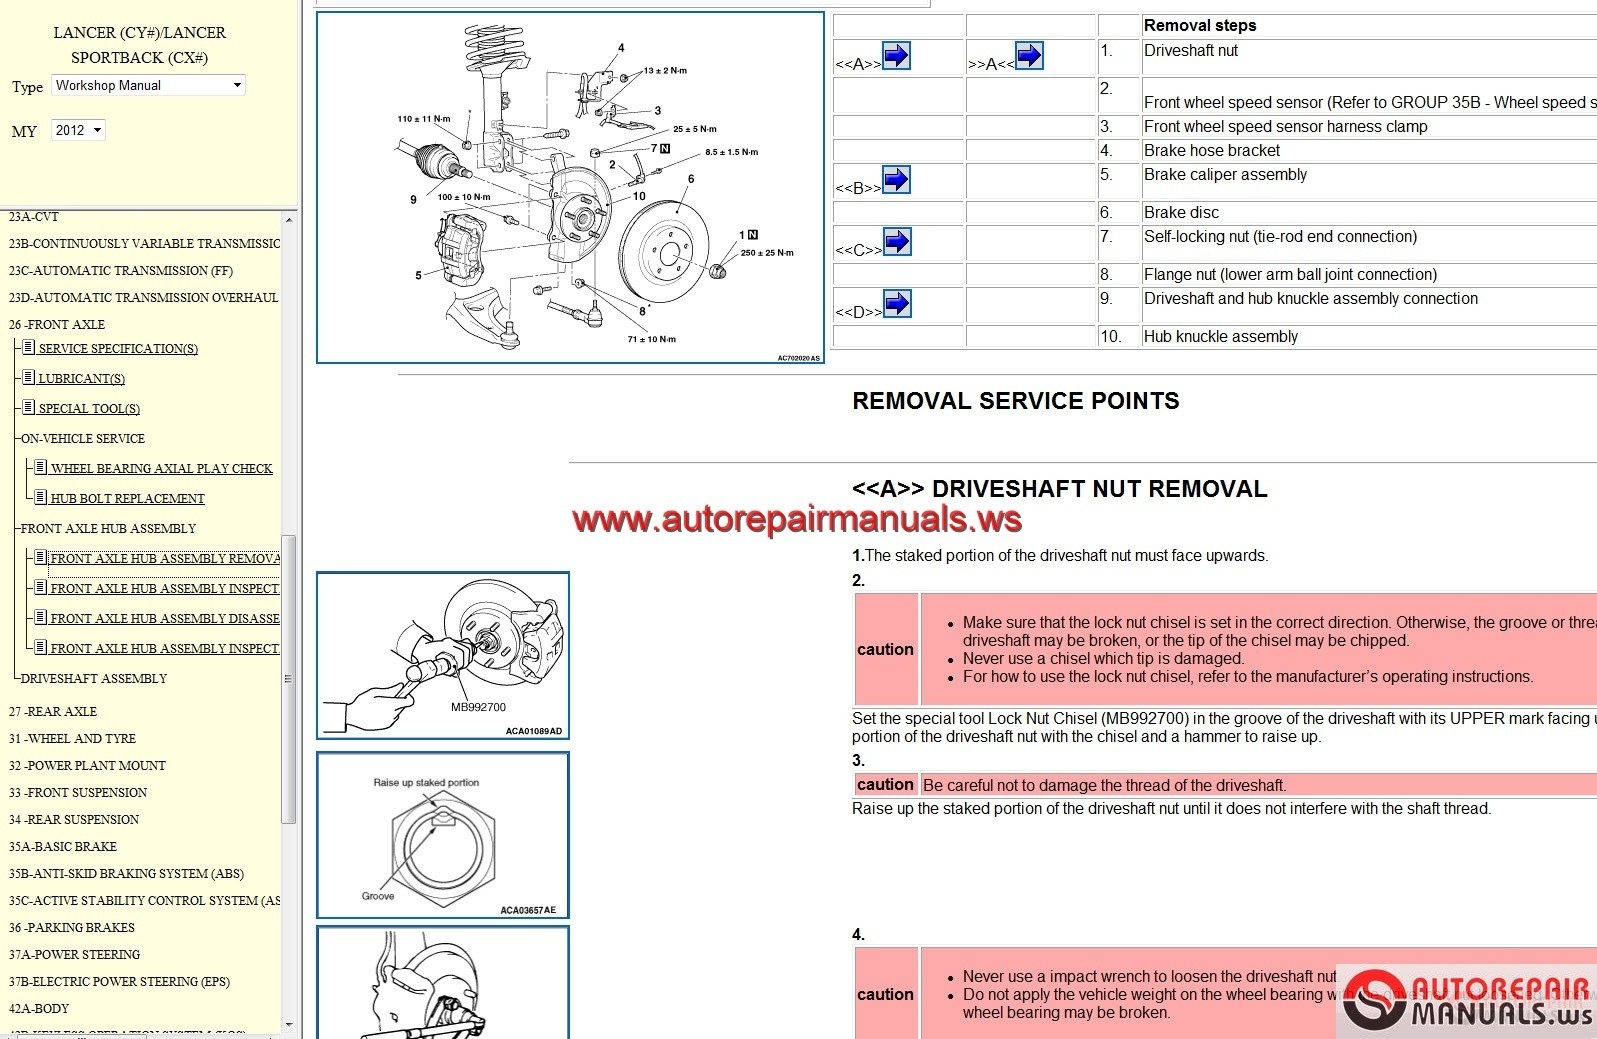 2011 Lancer Cvt Sport Wire Diagram 2011 Home Wiring Diagrams – 2011 Lancer Wiring Diagram